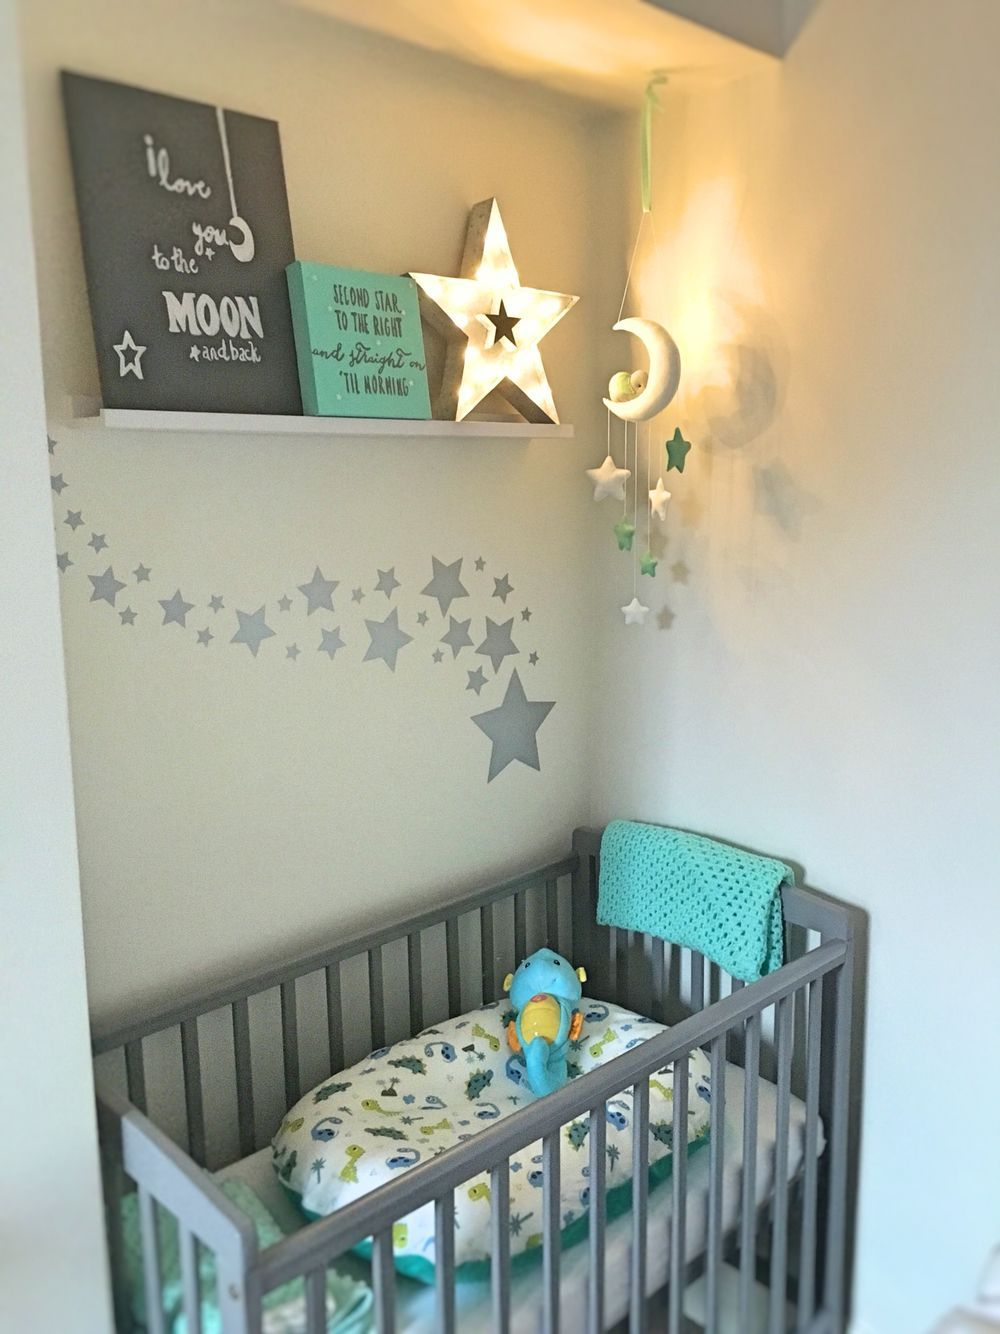 How Cute Is This Love You Dearly Antler Vinyl Decal A Great Way To Add The Por Woodlands Theme Your Nursery For Boy Or